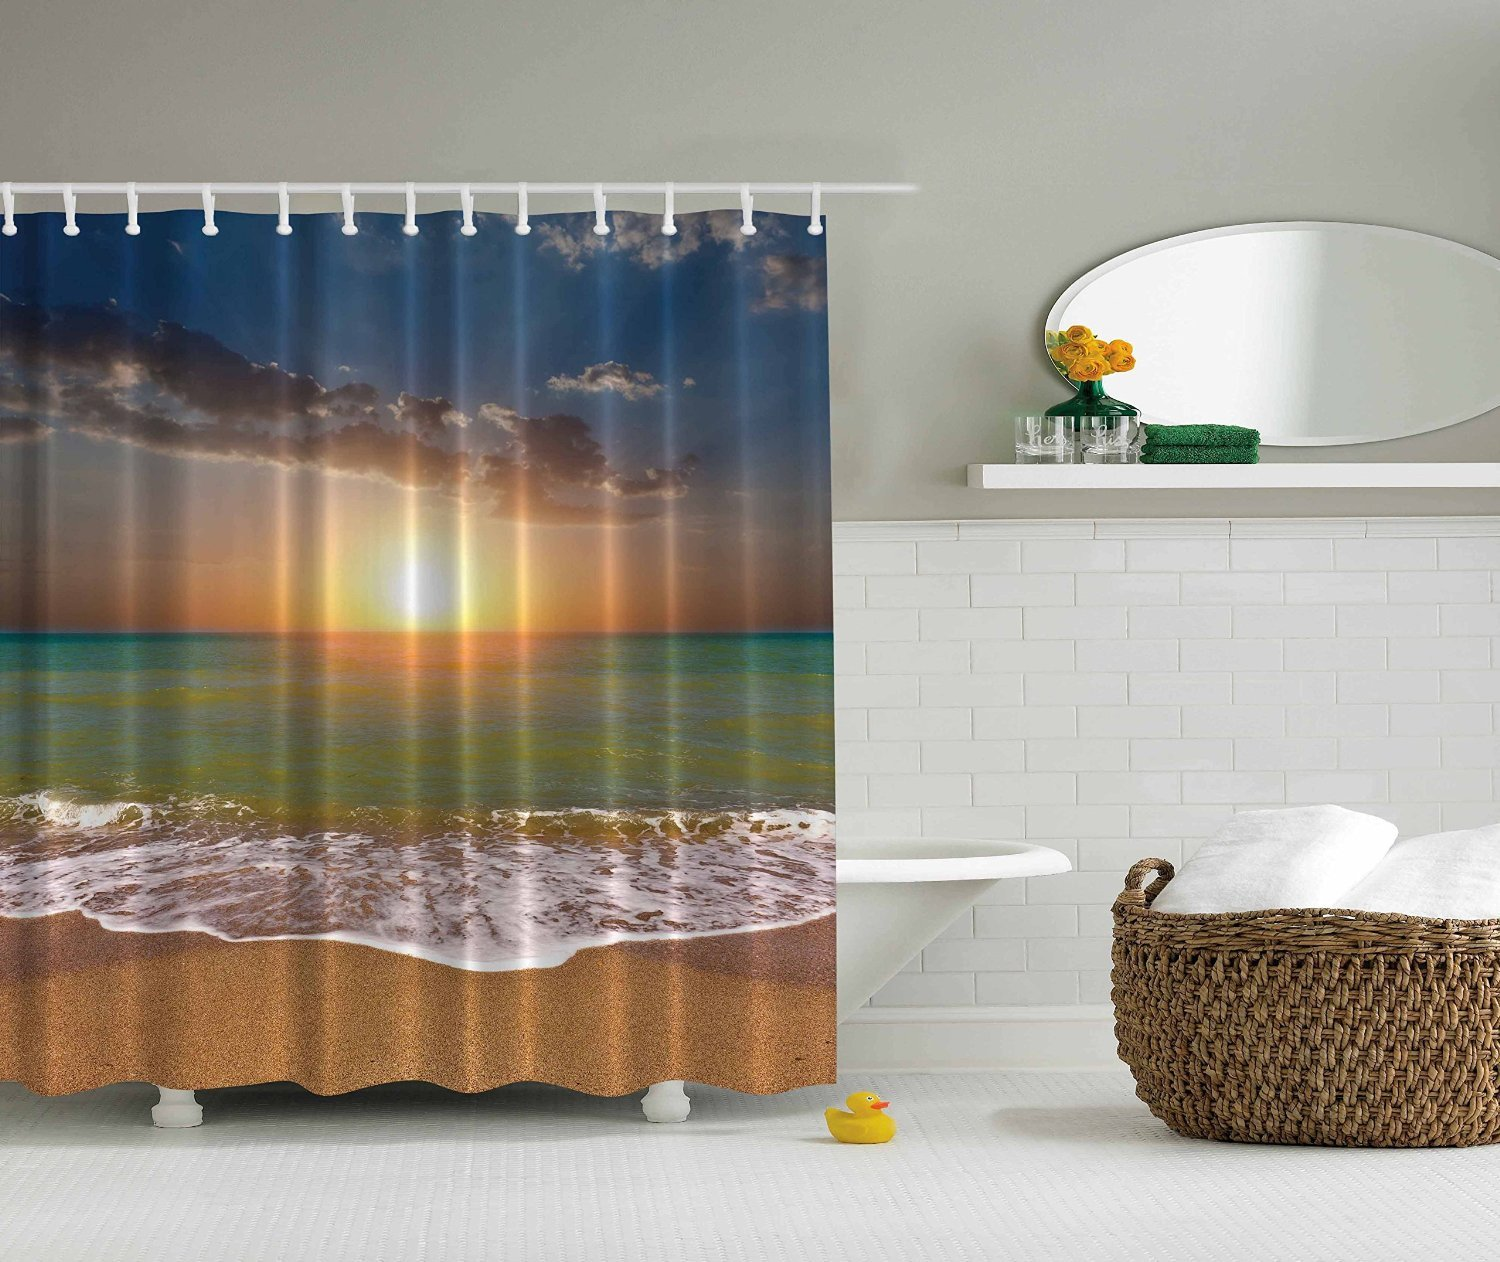 Amazon Designers Collection Digital Graphic Print Ocean Sunset Shower Curtain Set Non Vinyl Bath Waterproof Fabric Resistant Includes Hooks2939 Home